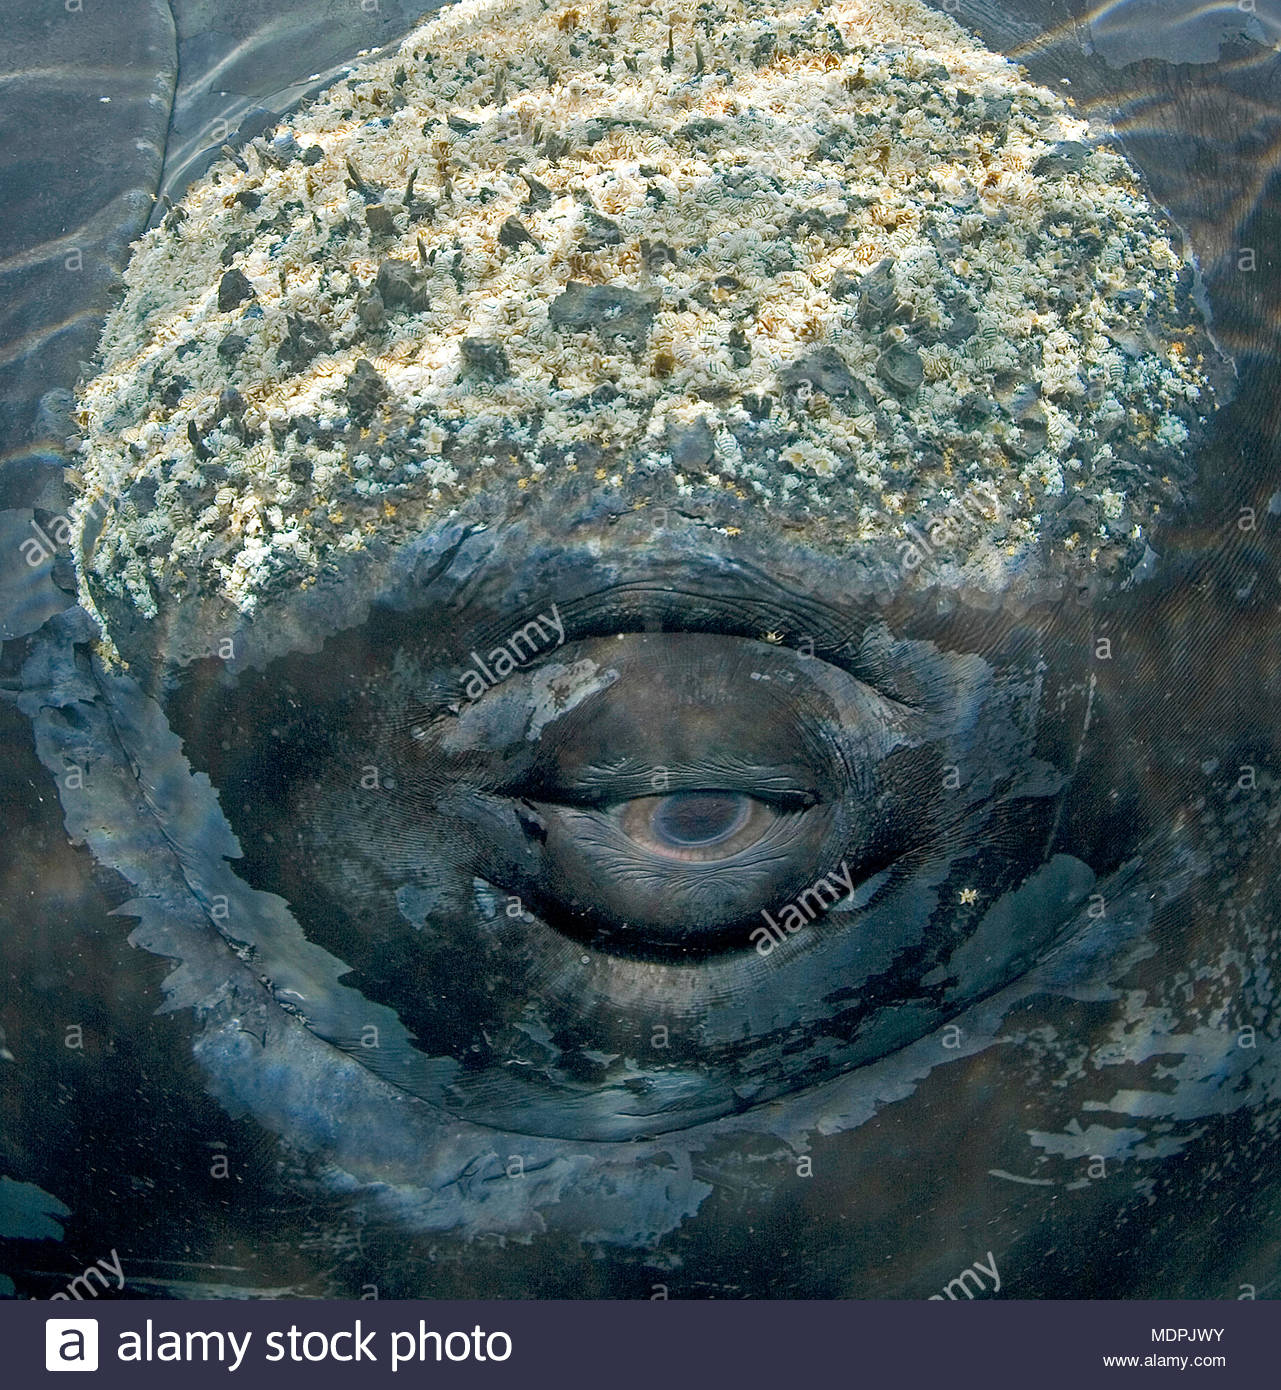 Eye of Southern Right Whale, (Eubalaena australis), callosities with barnacles (Balanidae) and whale lices (cyamids) on head, Valdes peninsula, Patag - Stock Image